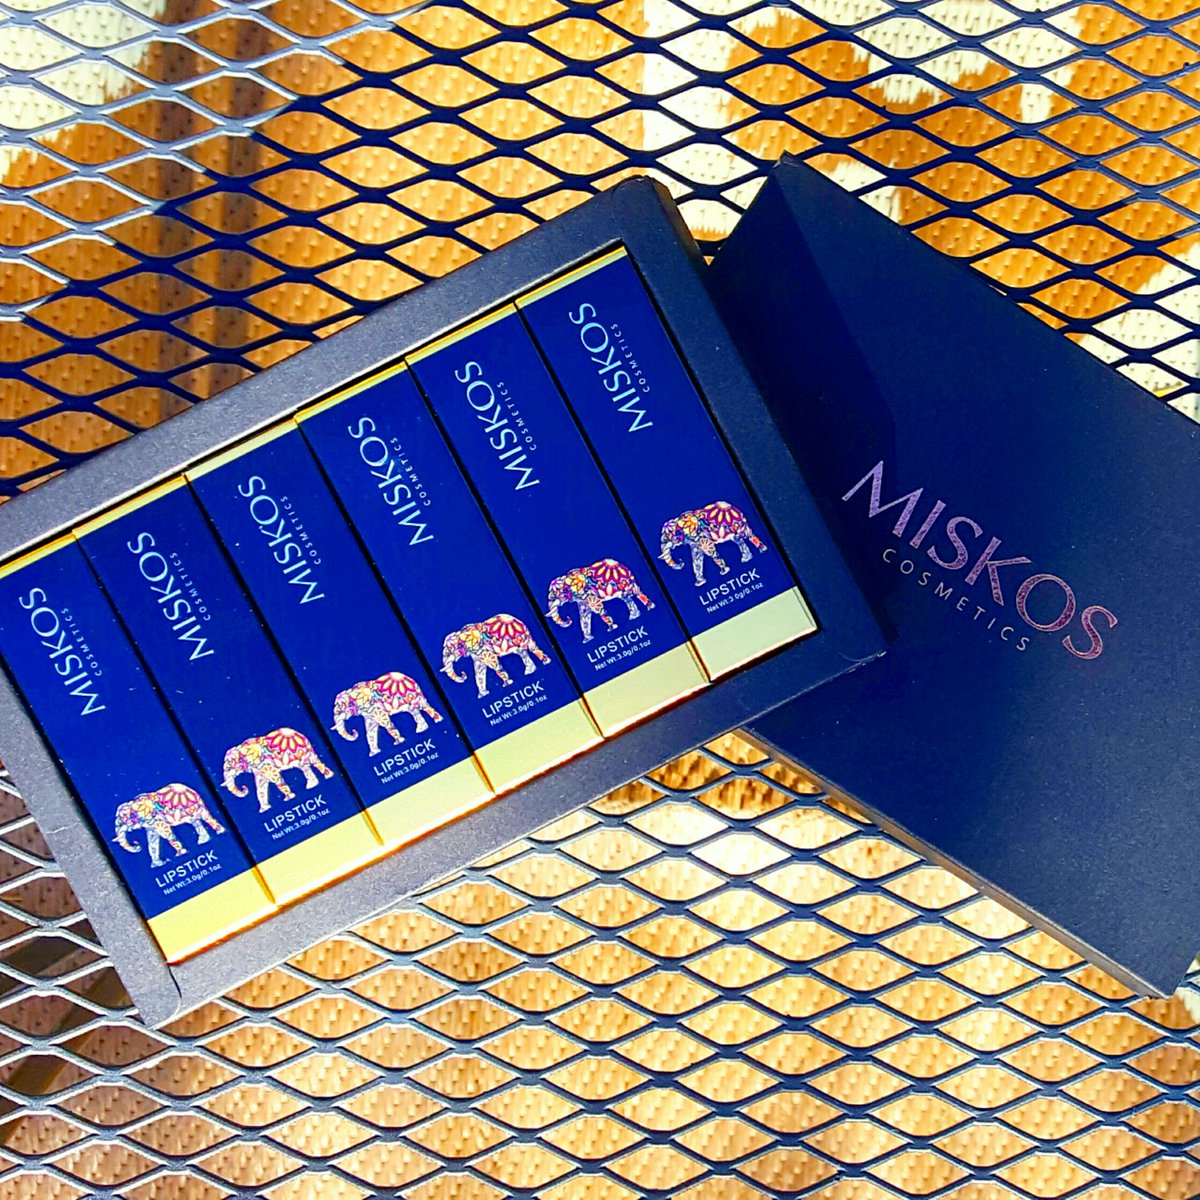 Check out these #MISKOS 6 pc matte waterproof lipsticks gift set. They are very velvety, long lasting and don't fade. #beautiful #beautytricks #ad #beautyessentials #beauty #lipstick #makeupartist #makeuplove 💜 Use #unique code: XKMLIPCBB for 20% off ➡https://t.co/KVMyfTq8LV https://t.co/SF9qsXforq